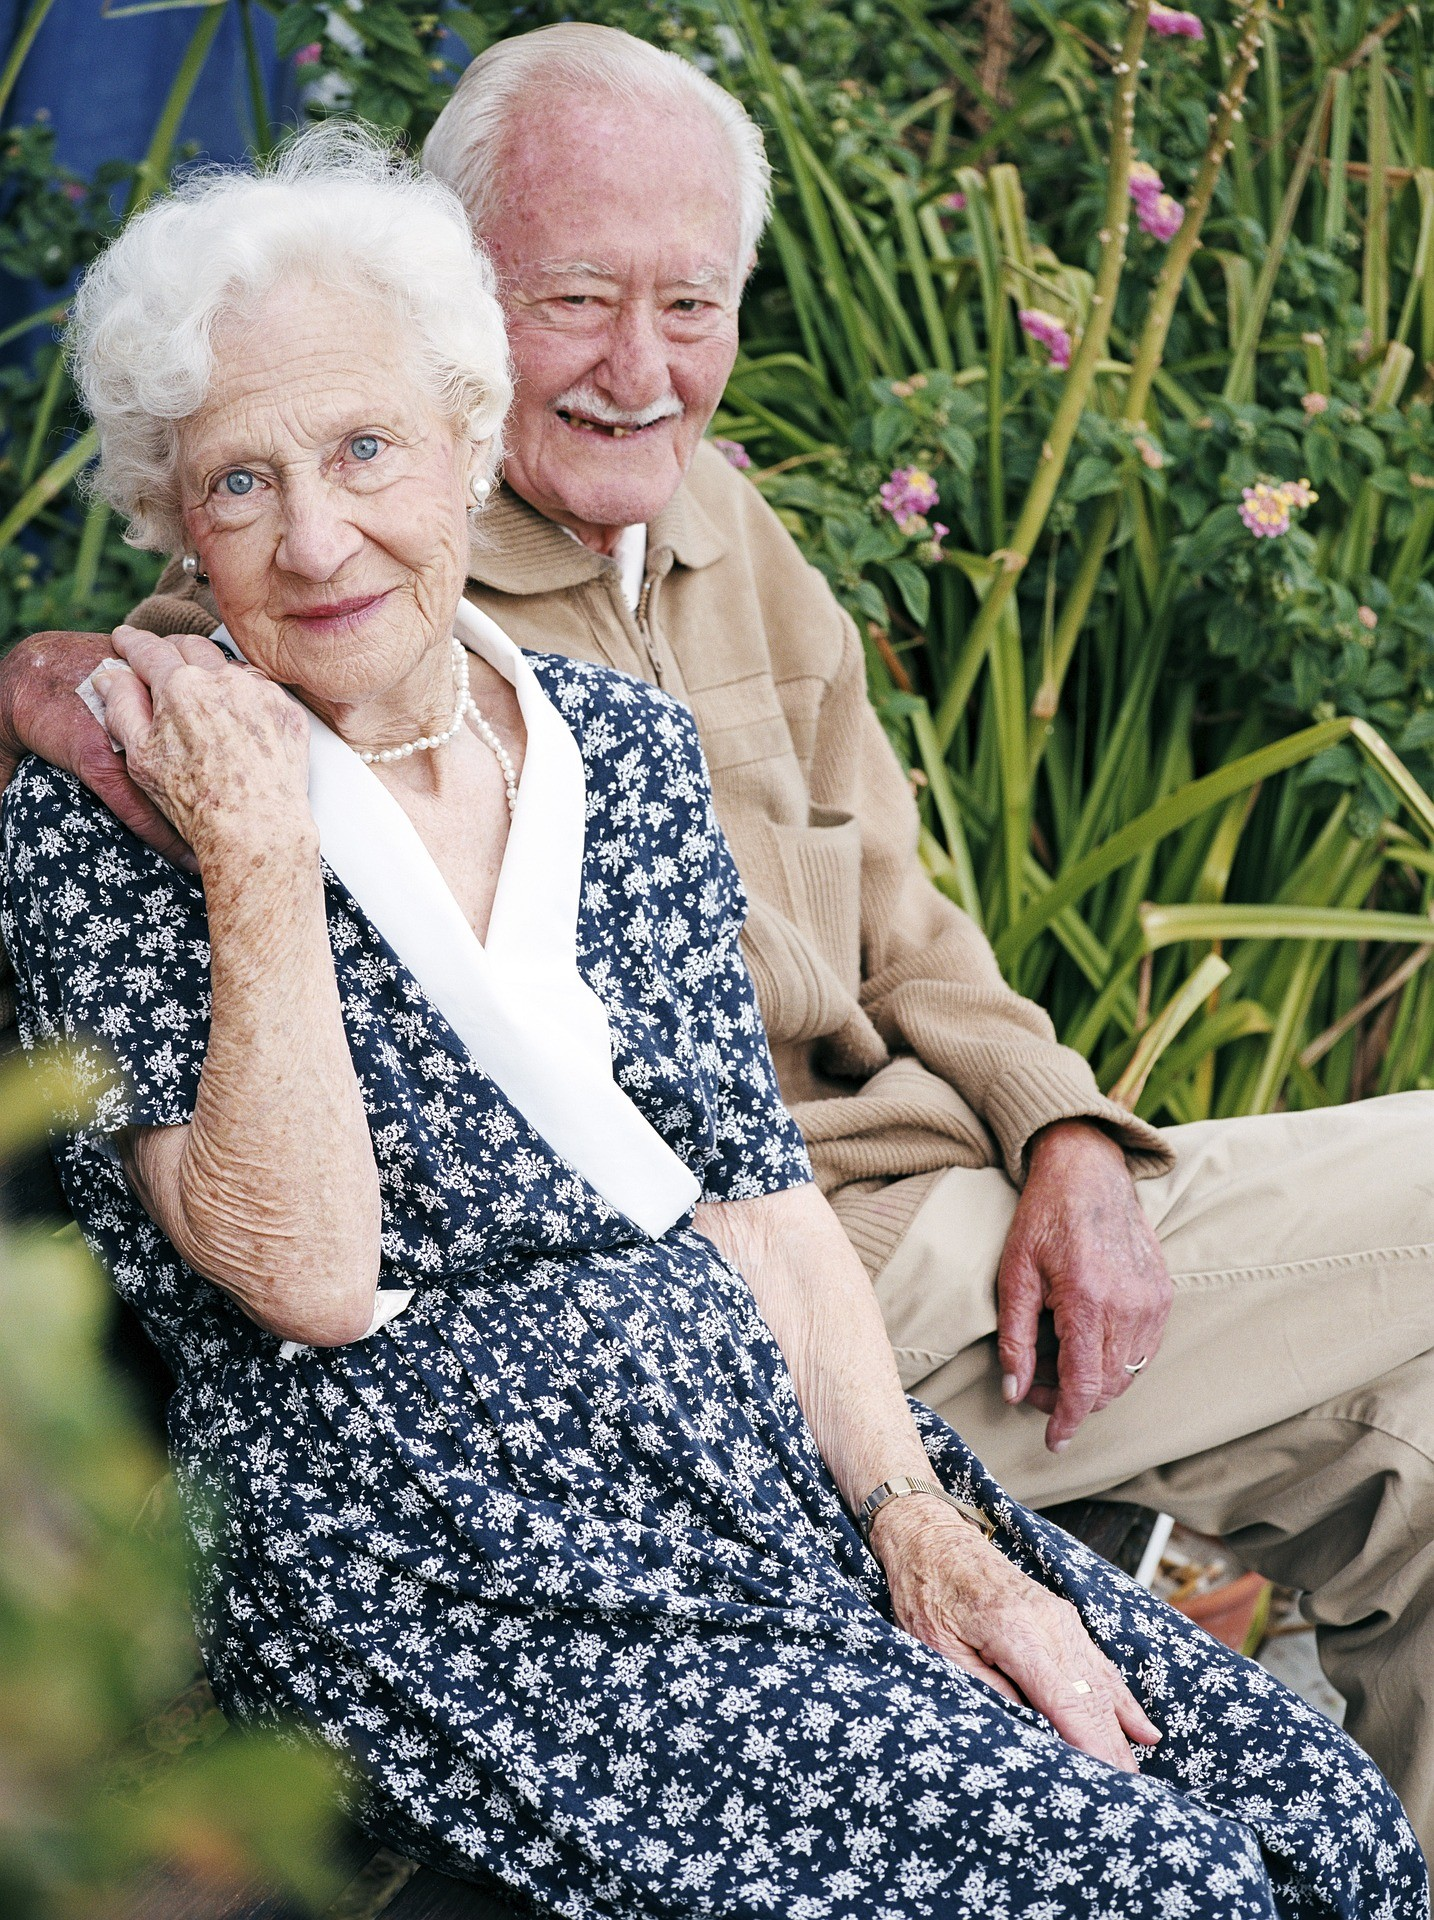 Can You Care For Your Aging Parents?